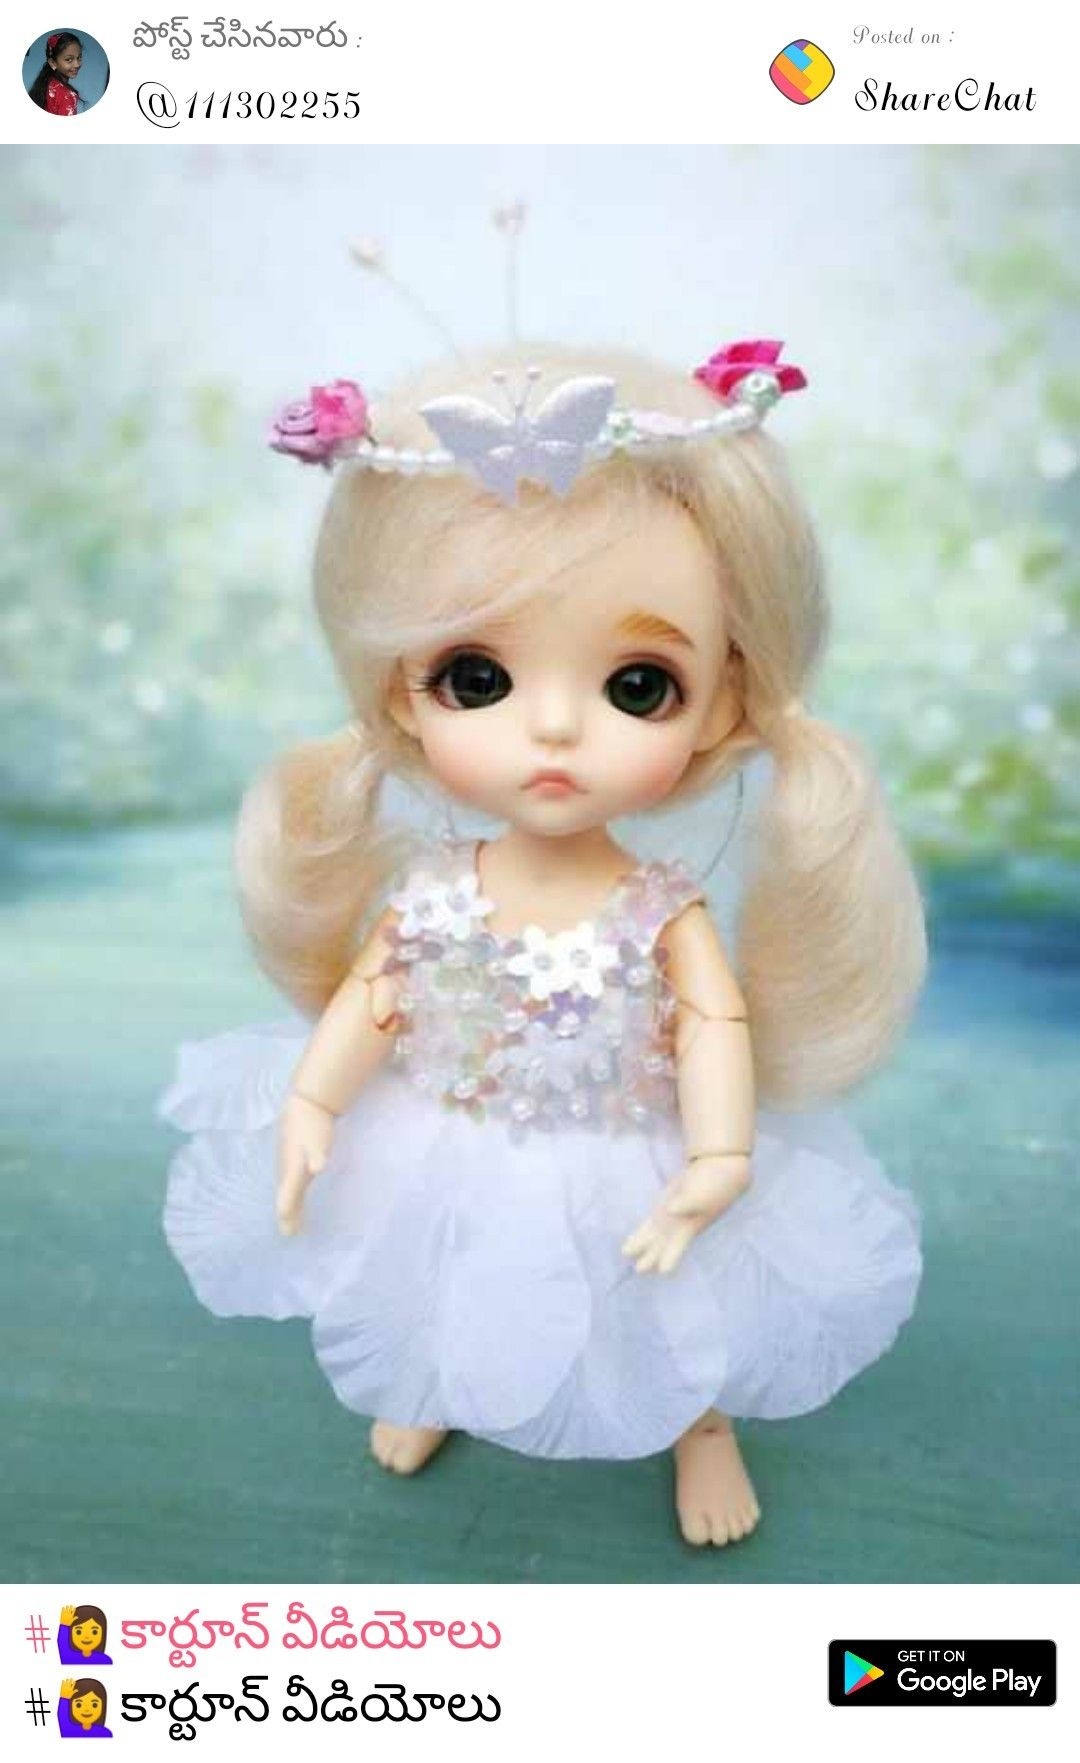 Pin By 8555027959 On Share Chat Cute Dolls Baby Girl Drawing Cute Girl Wallpaper